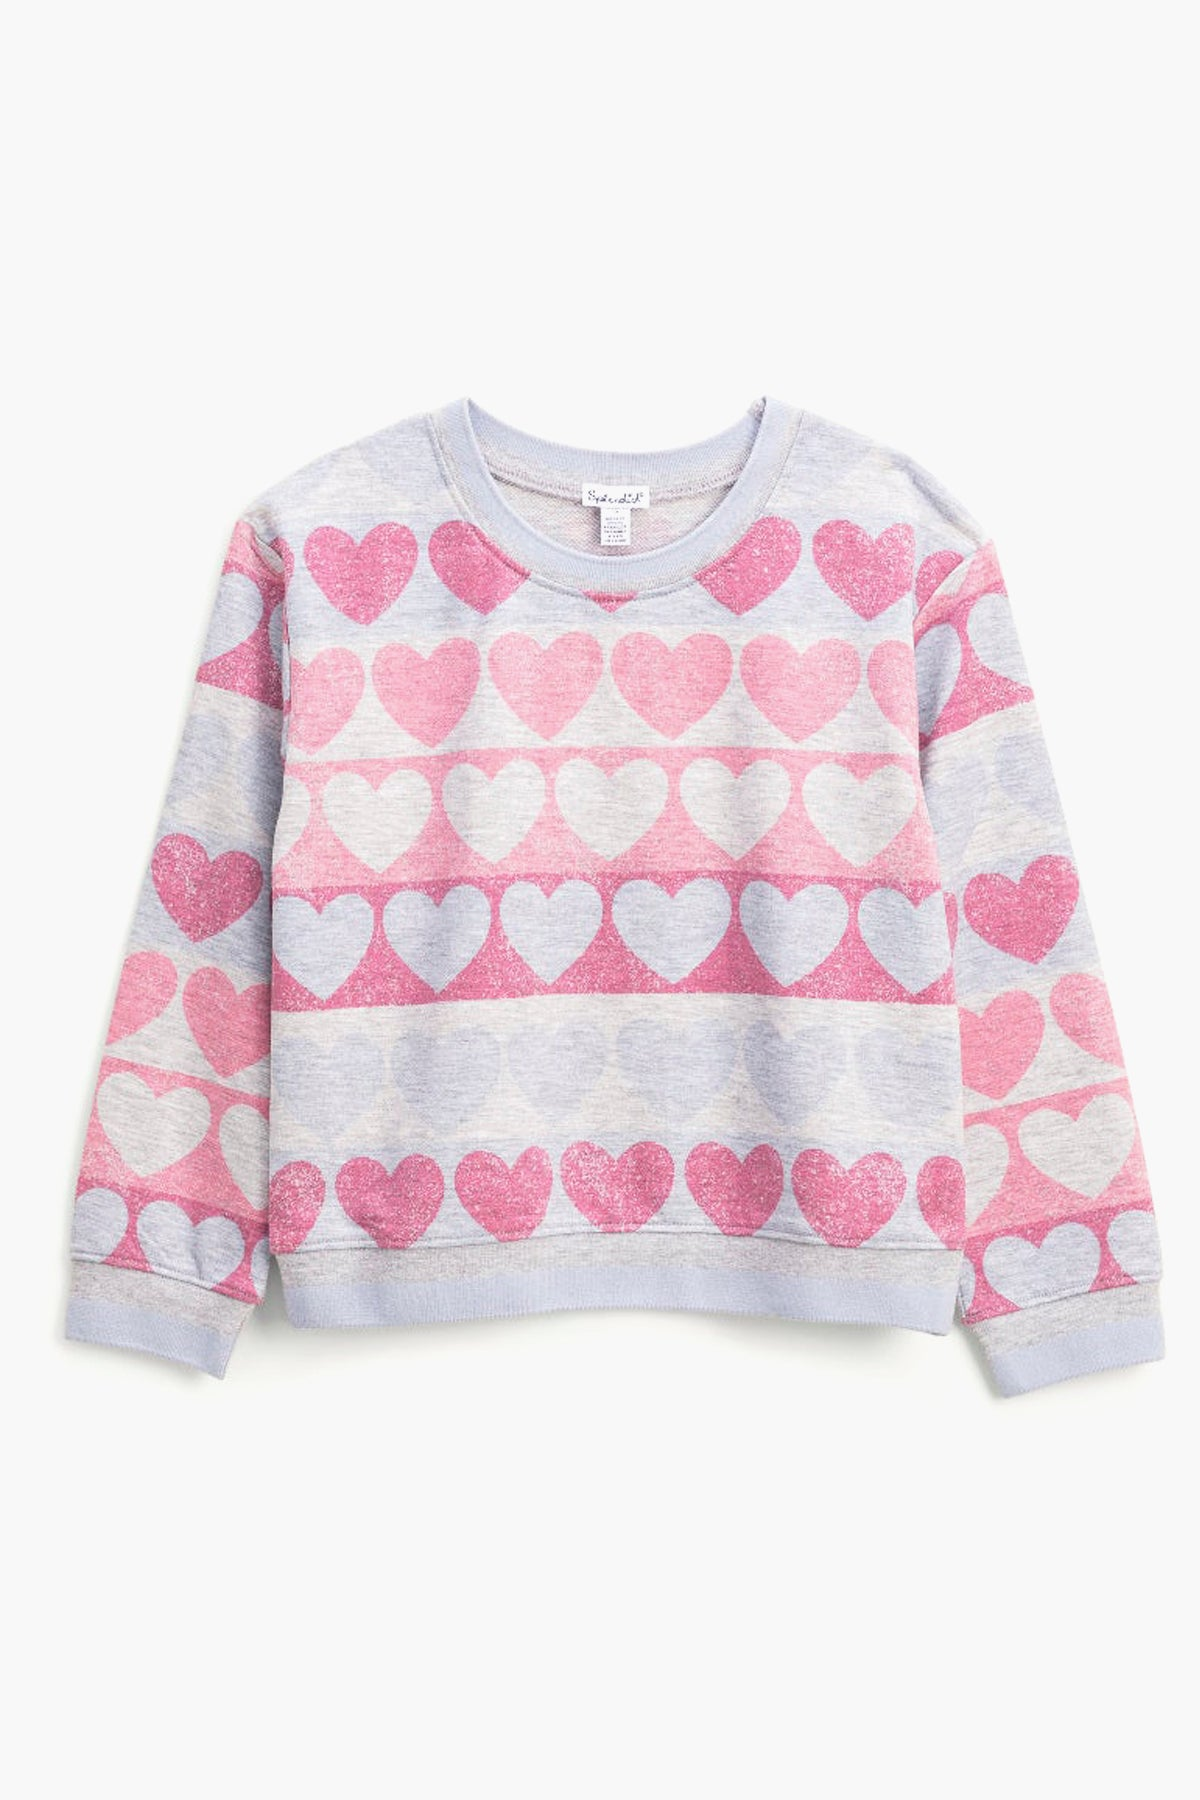 Splendid Lovely Girls Sweatshirt